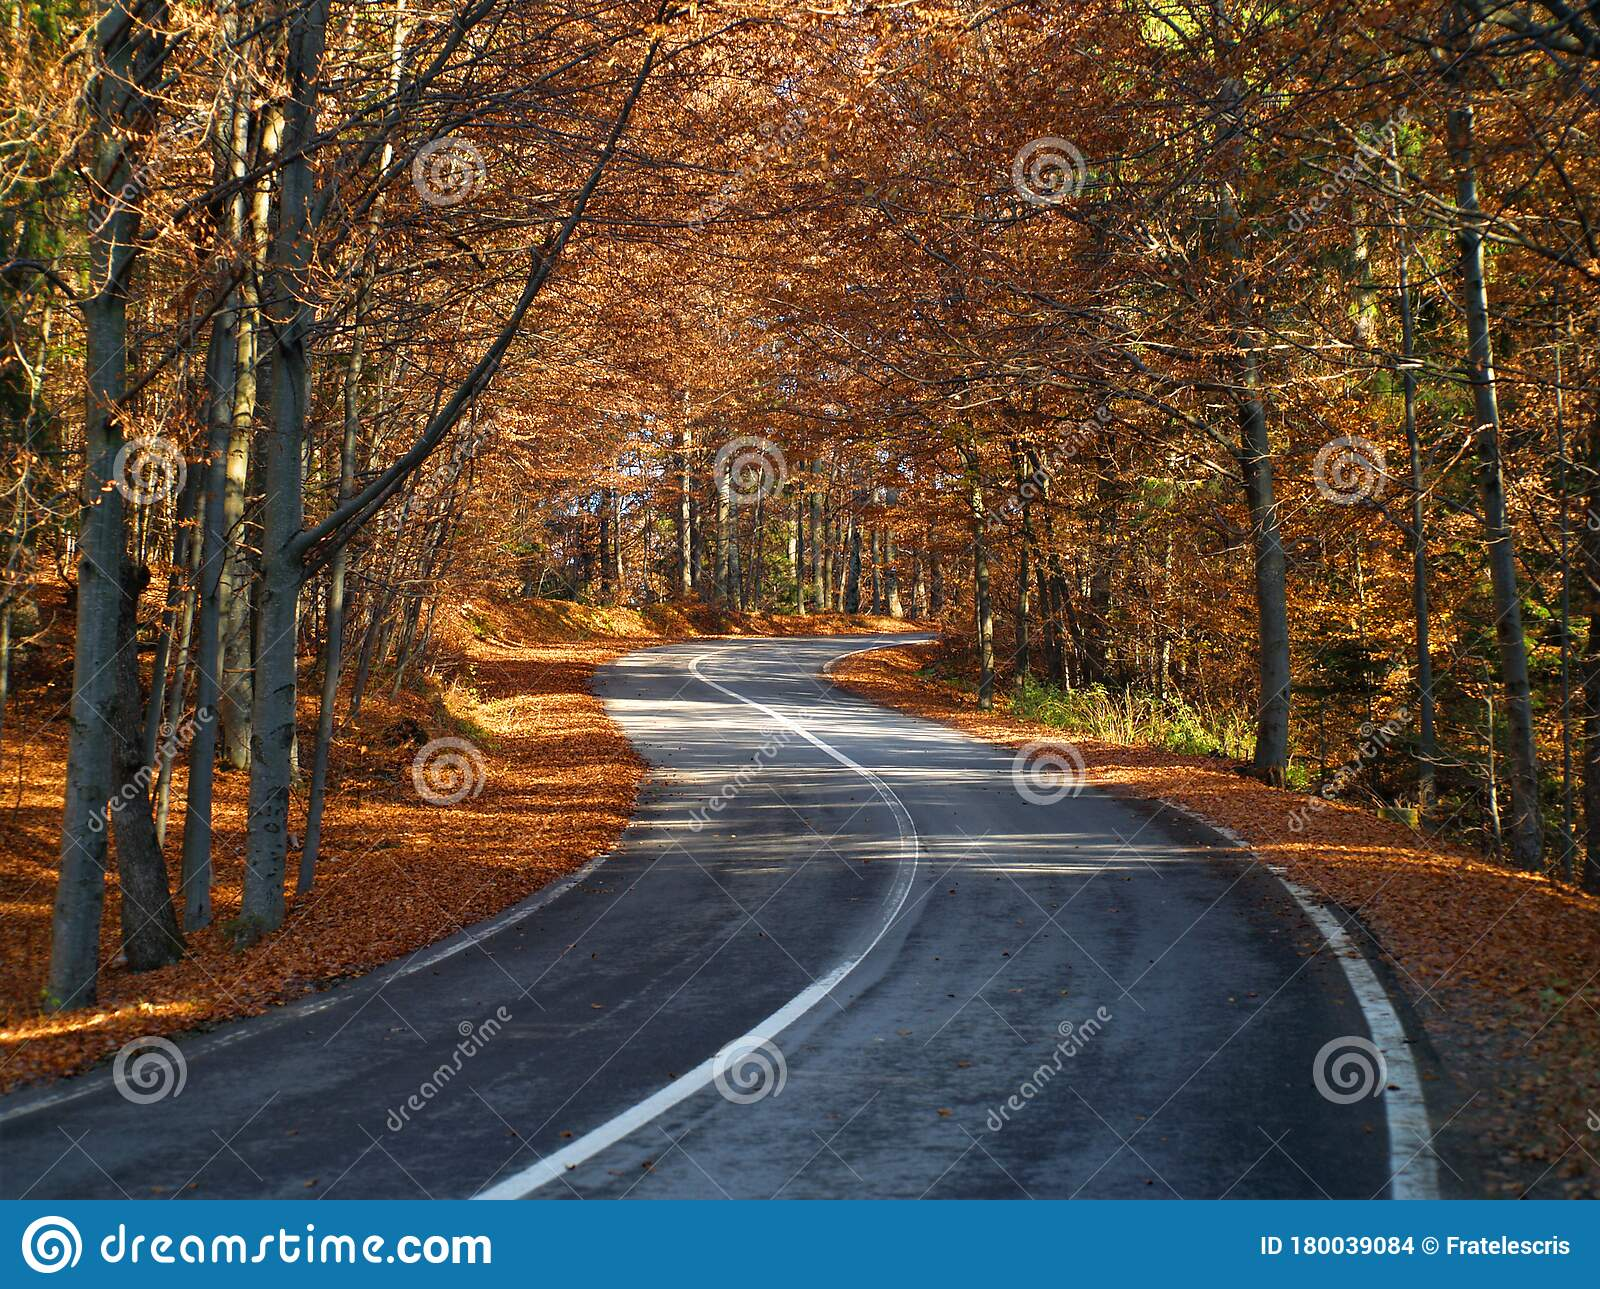 Curvy Road Through The Forest In Autumn Many Colorful Leafs On The Ground Road To The Woods Stock Photo Image Of Blanket Curvy 180039084